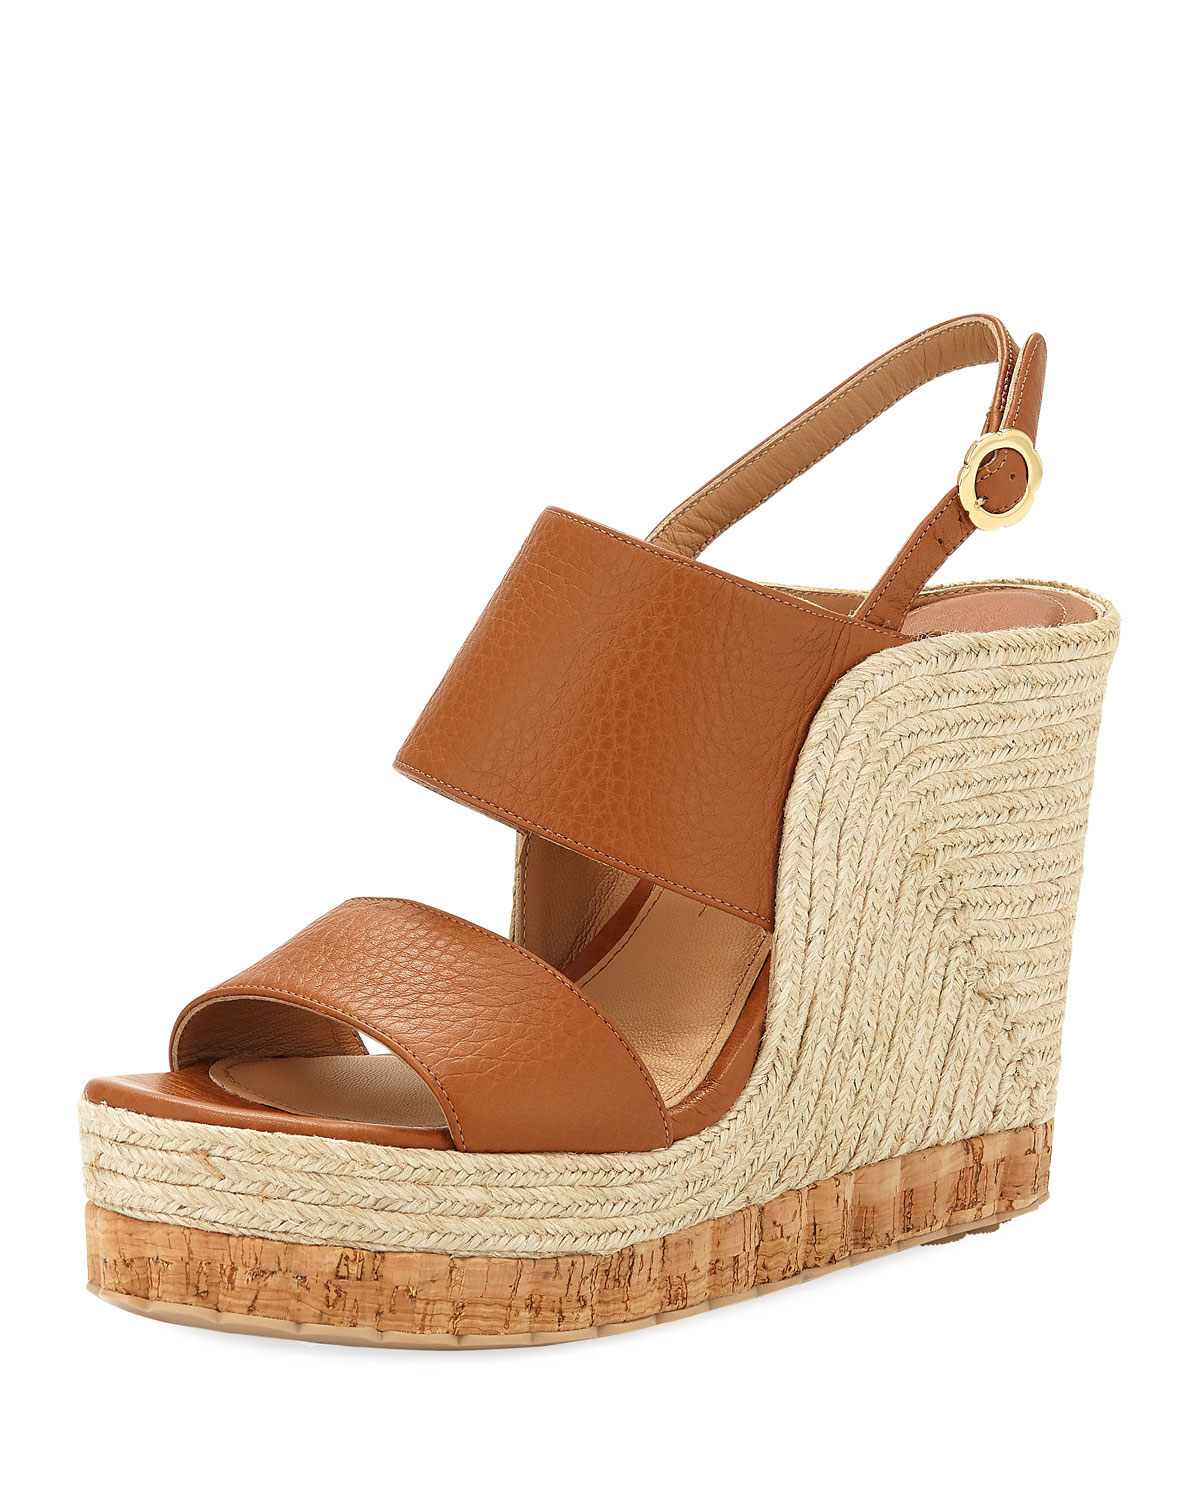 1d4e73c0c31 Salvatore Ferragamo Maratea Leather Wedge Espadrille Sandal